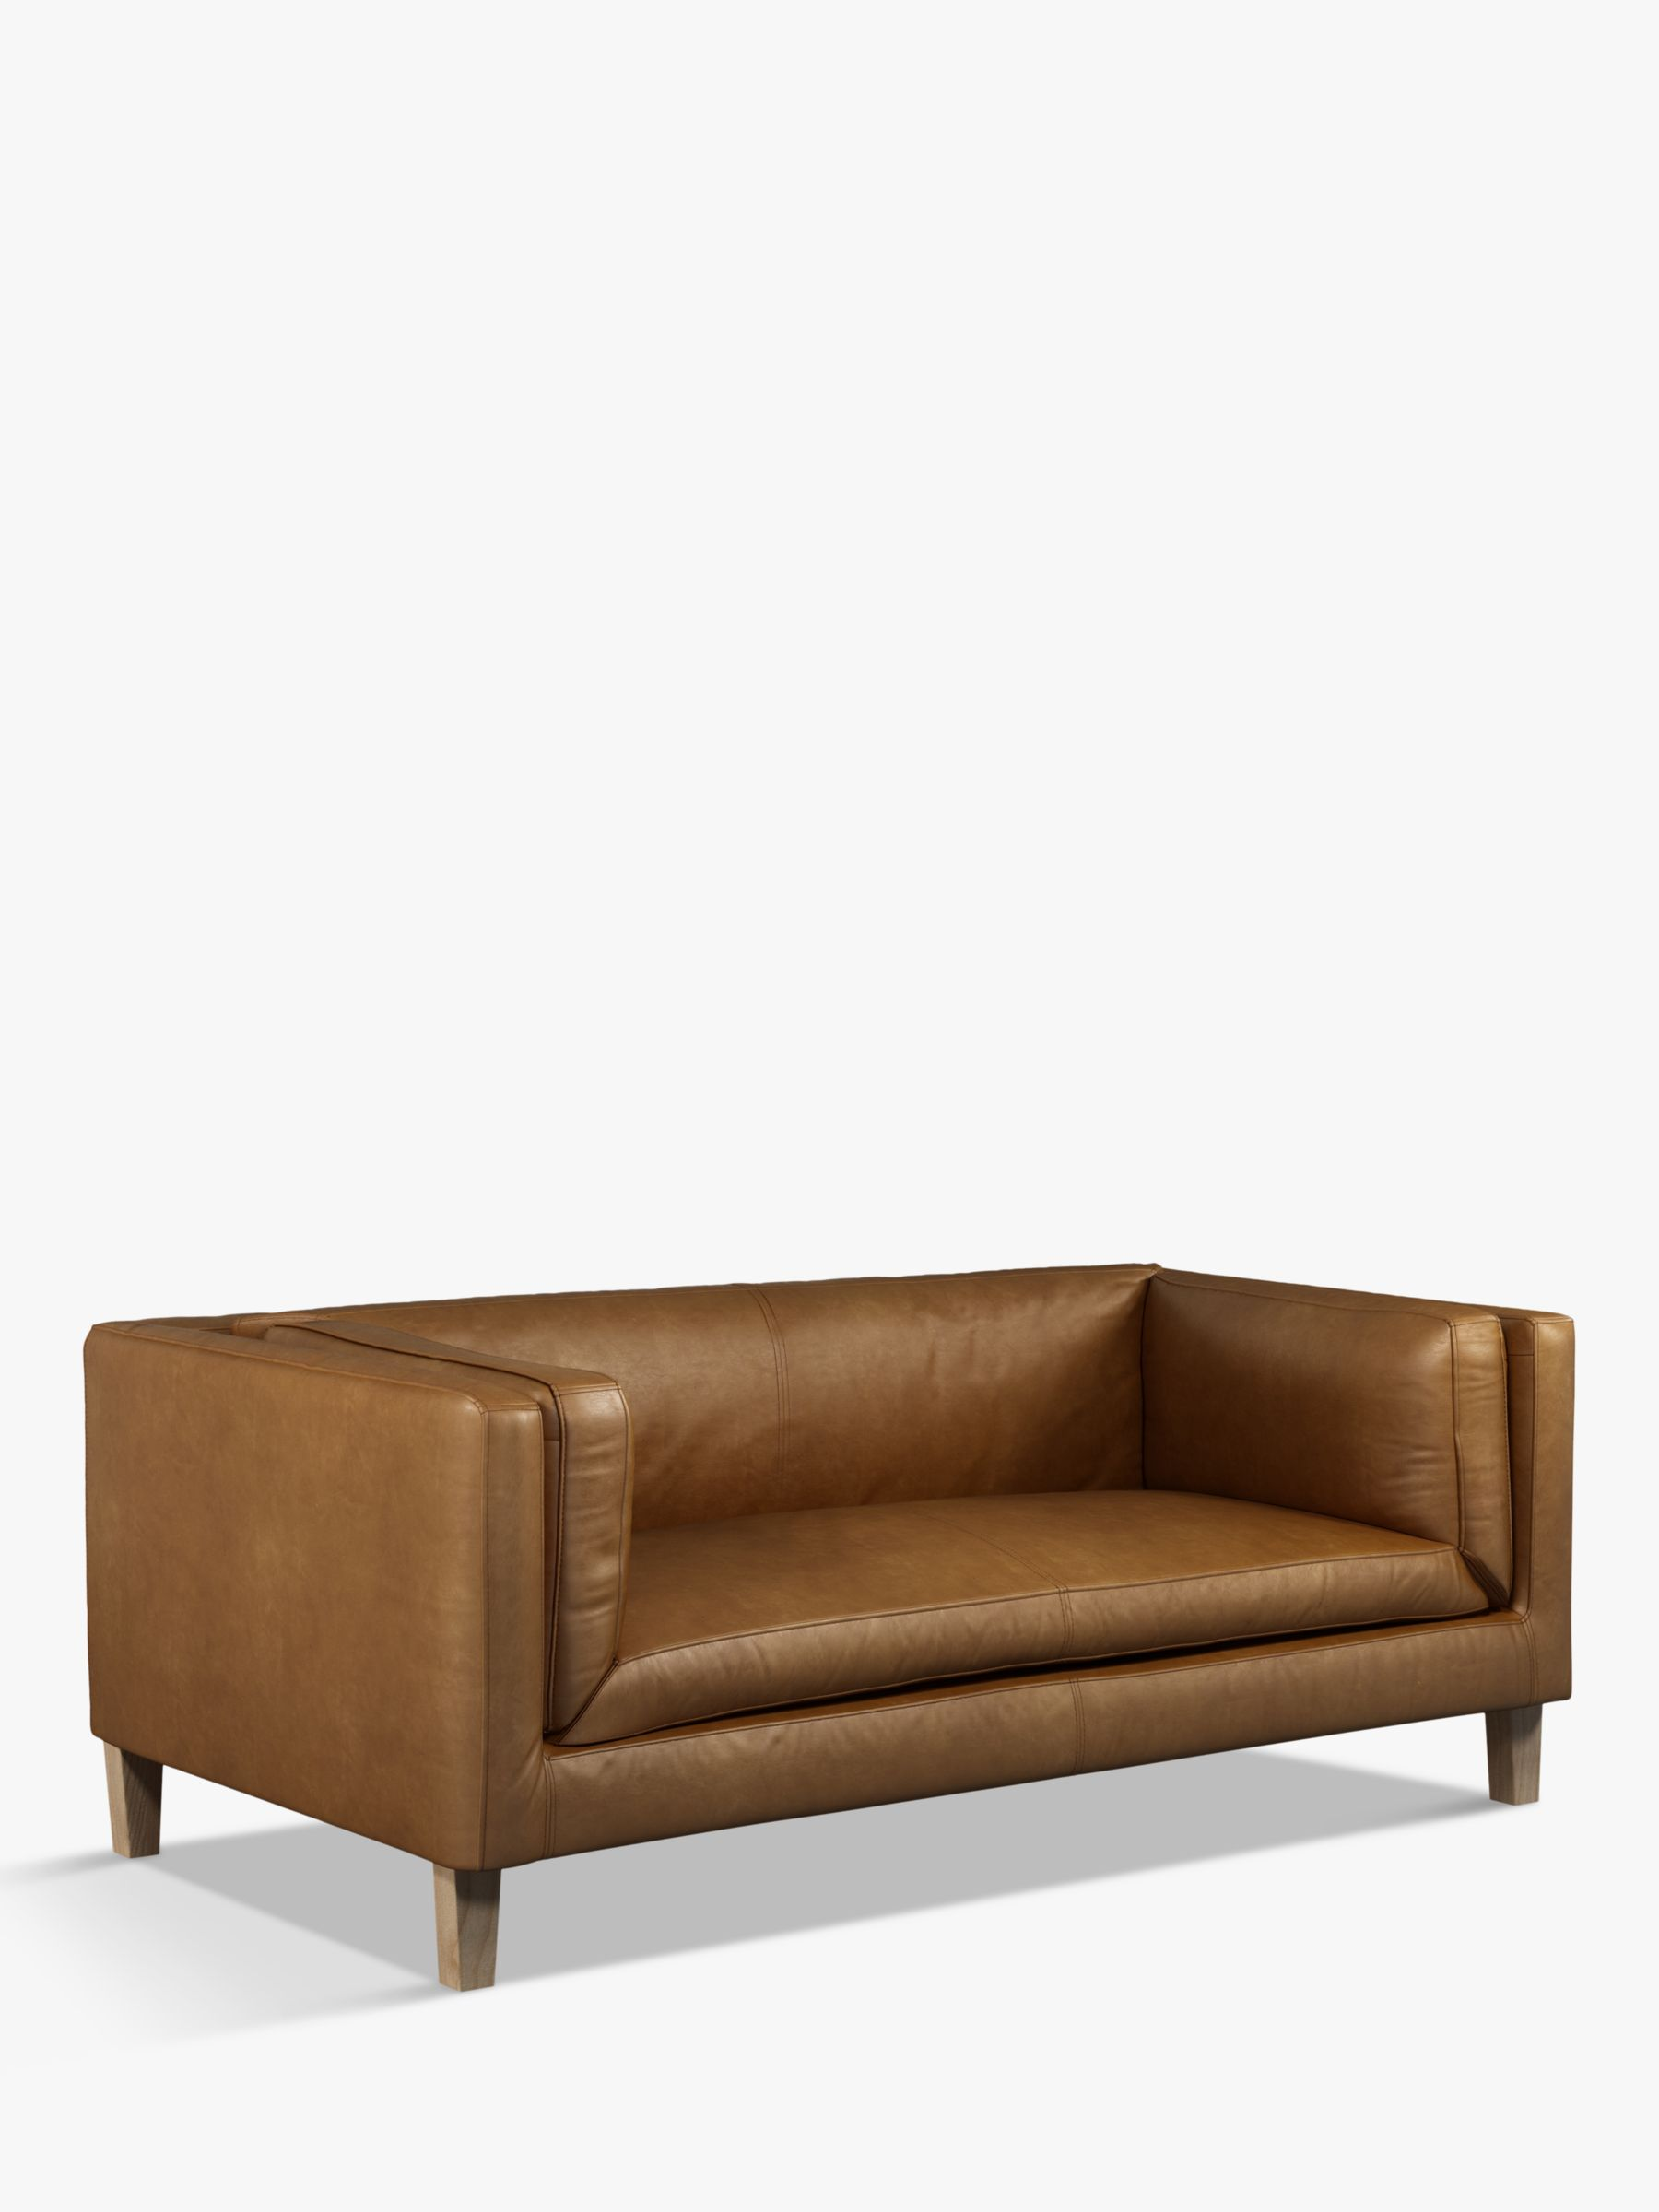 Halo Halo Spencer Medium 2 Seater Leather Sofa